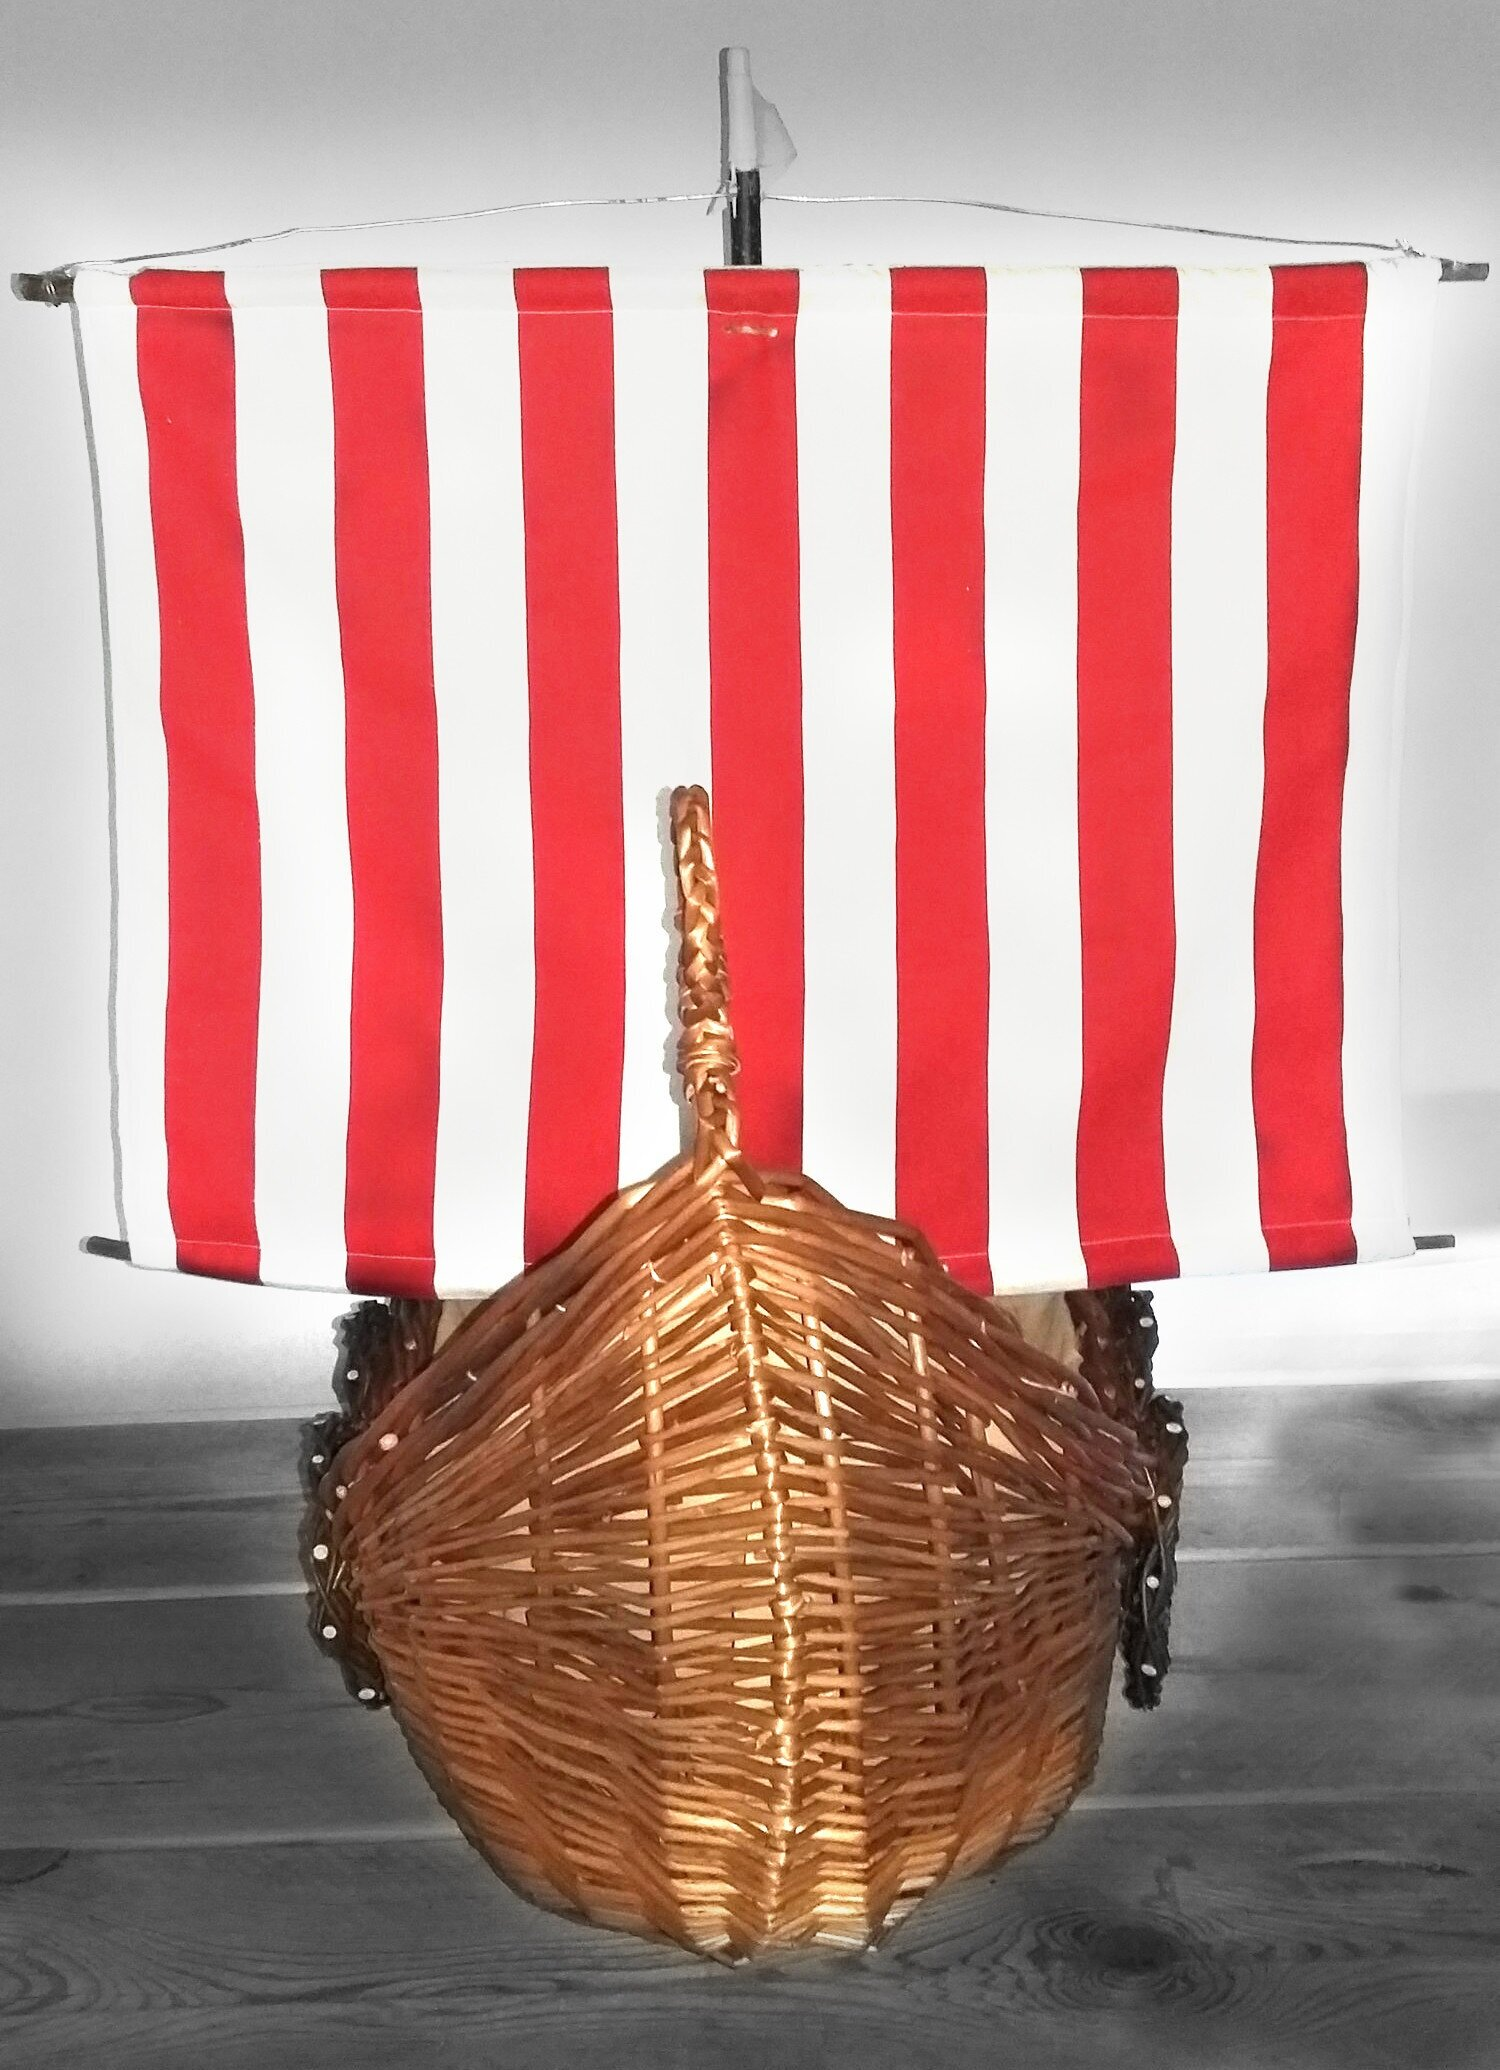 viking+ship+casket+with+red+and+white+sails.jpg